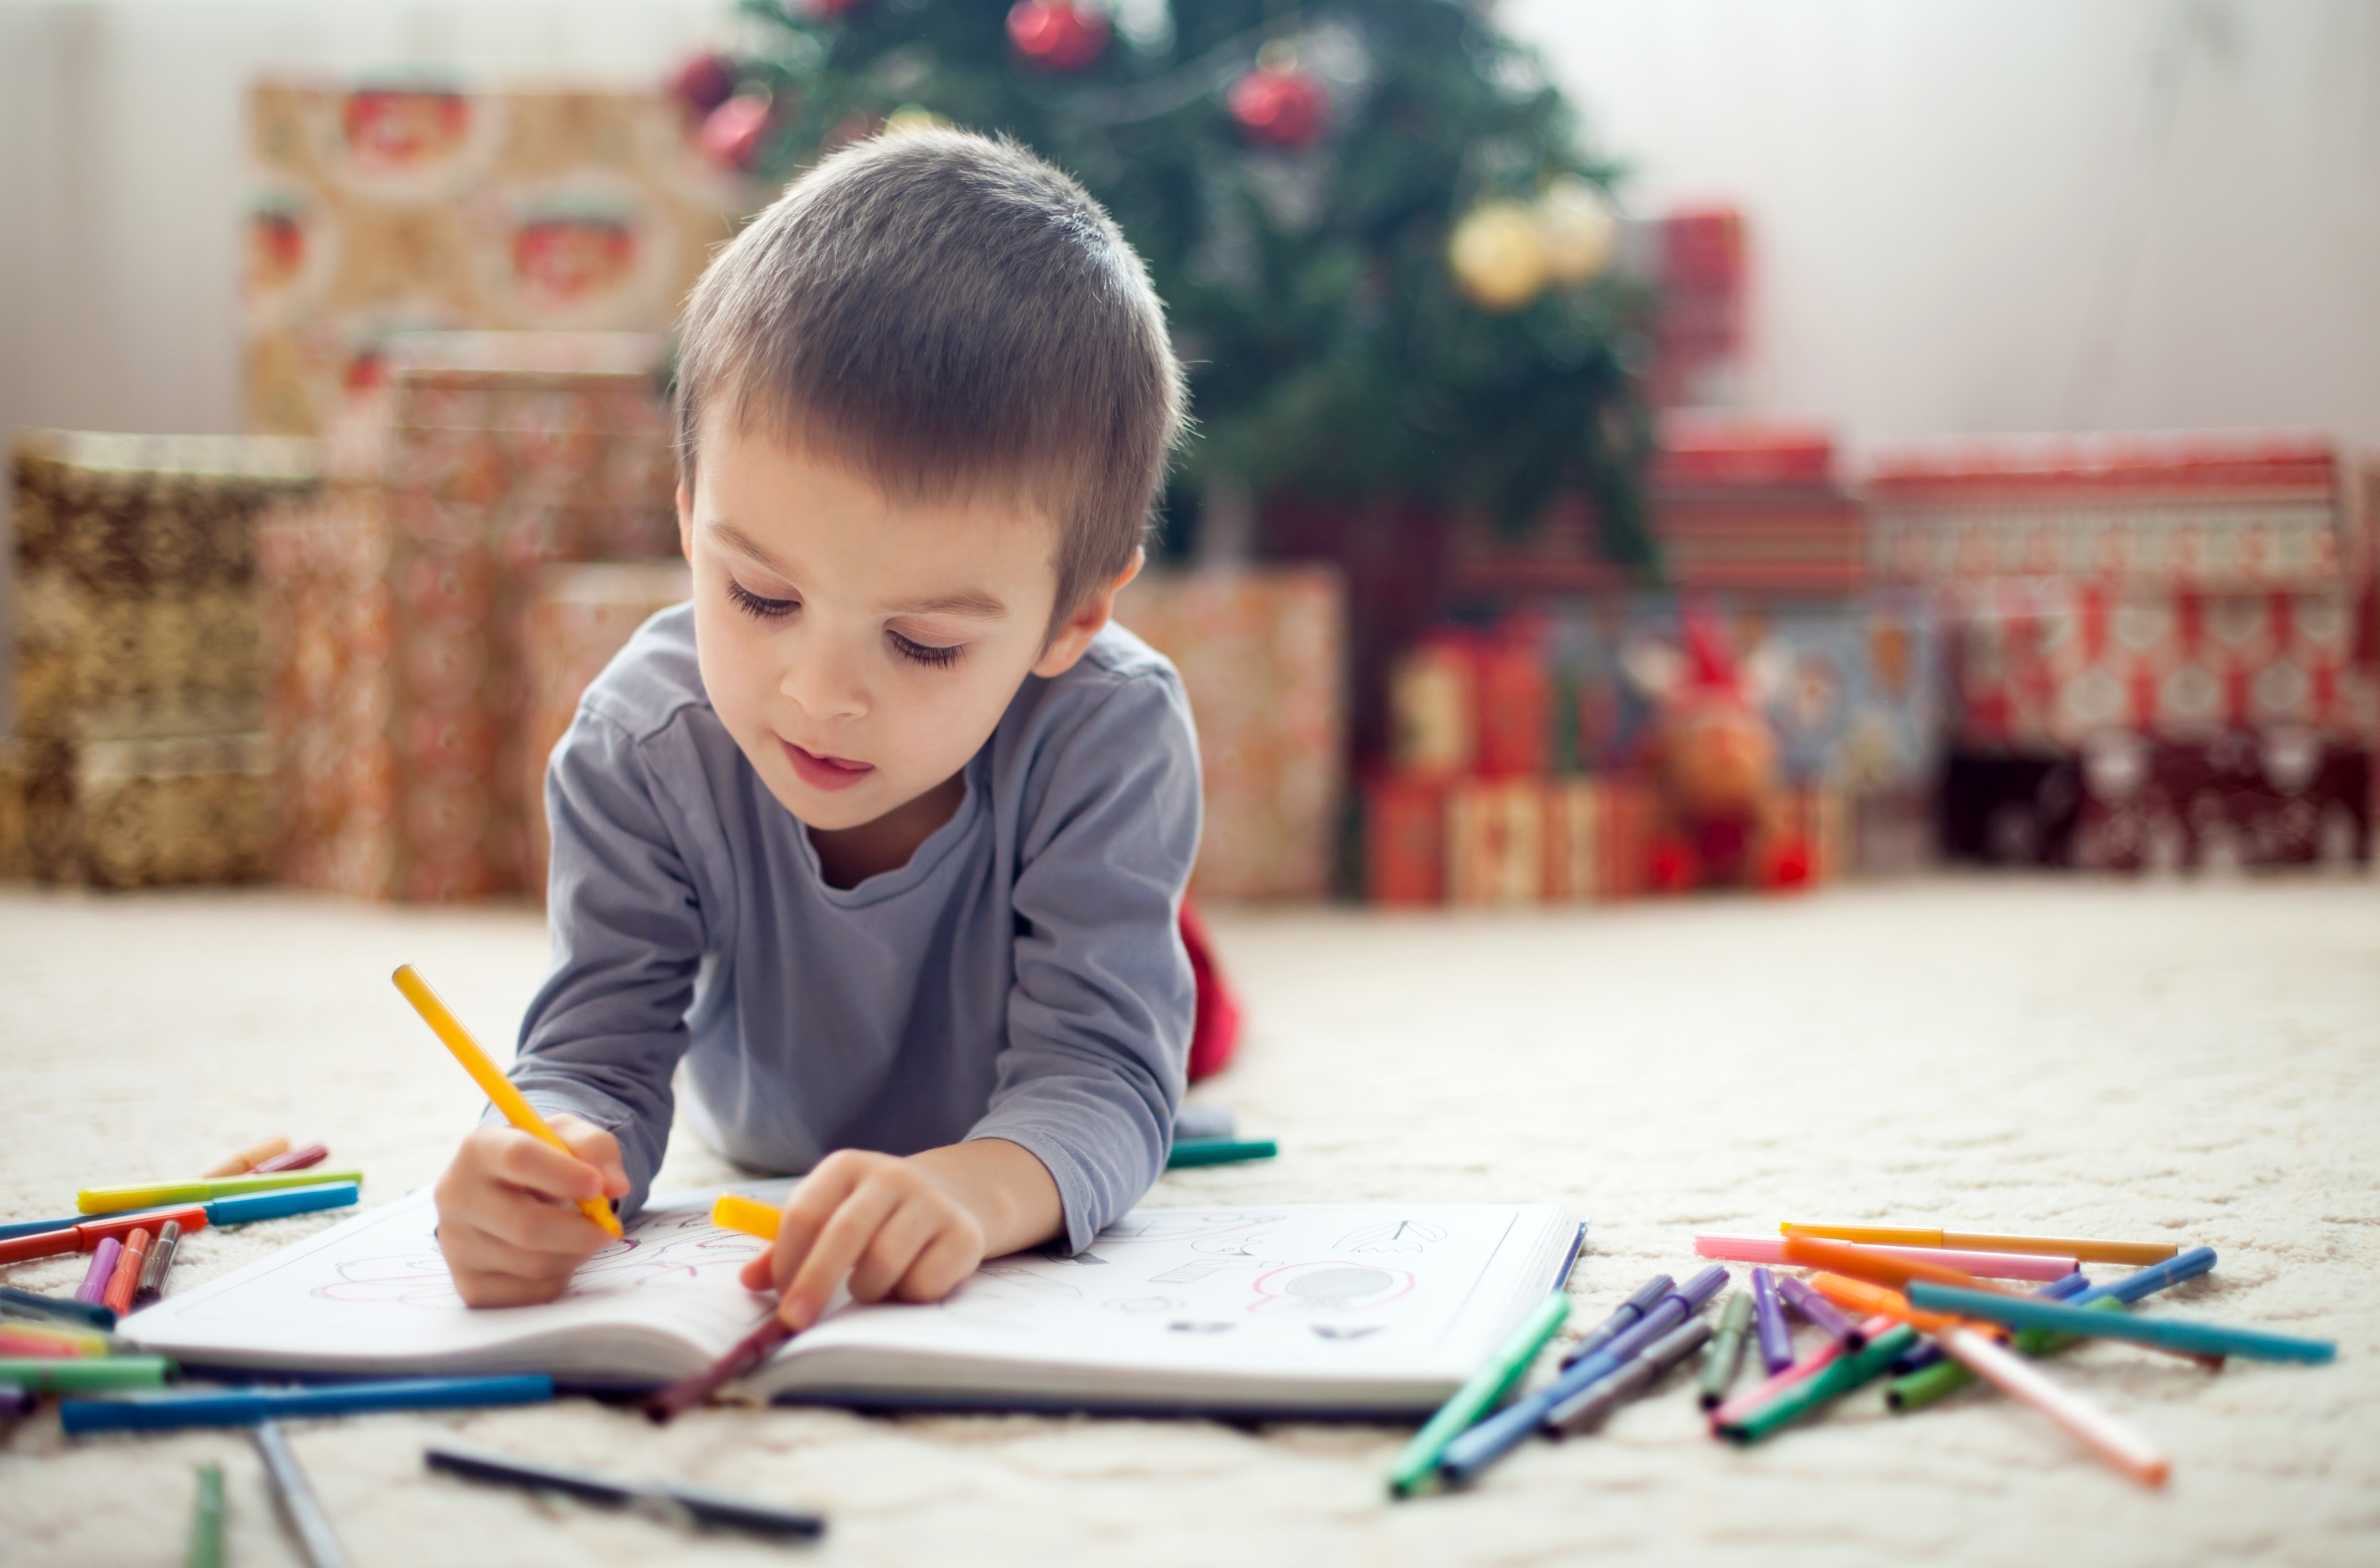 How Much Does It Benefit A Child To Delay Kindergarten Entry For A Year